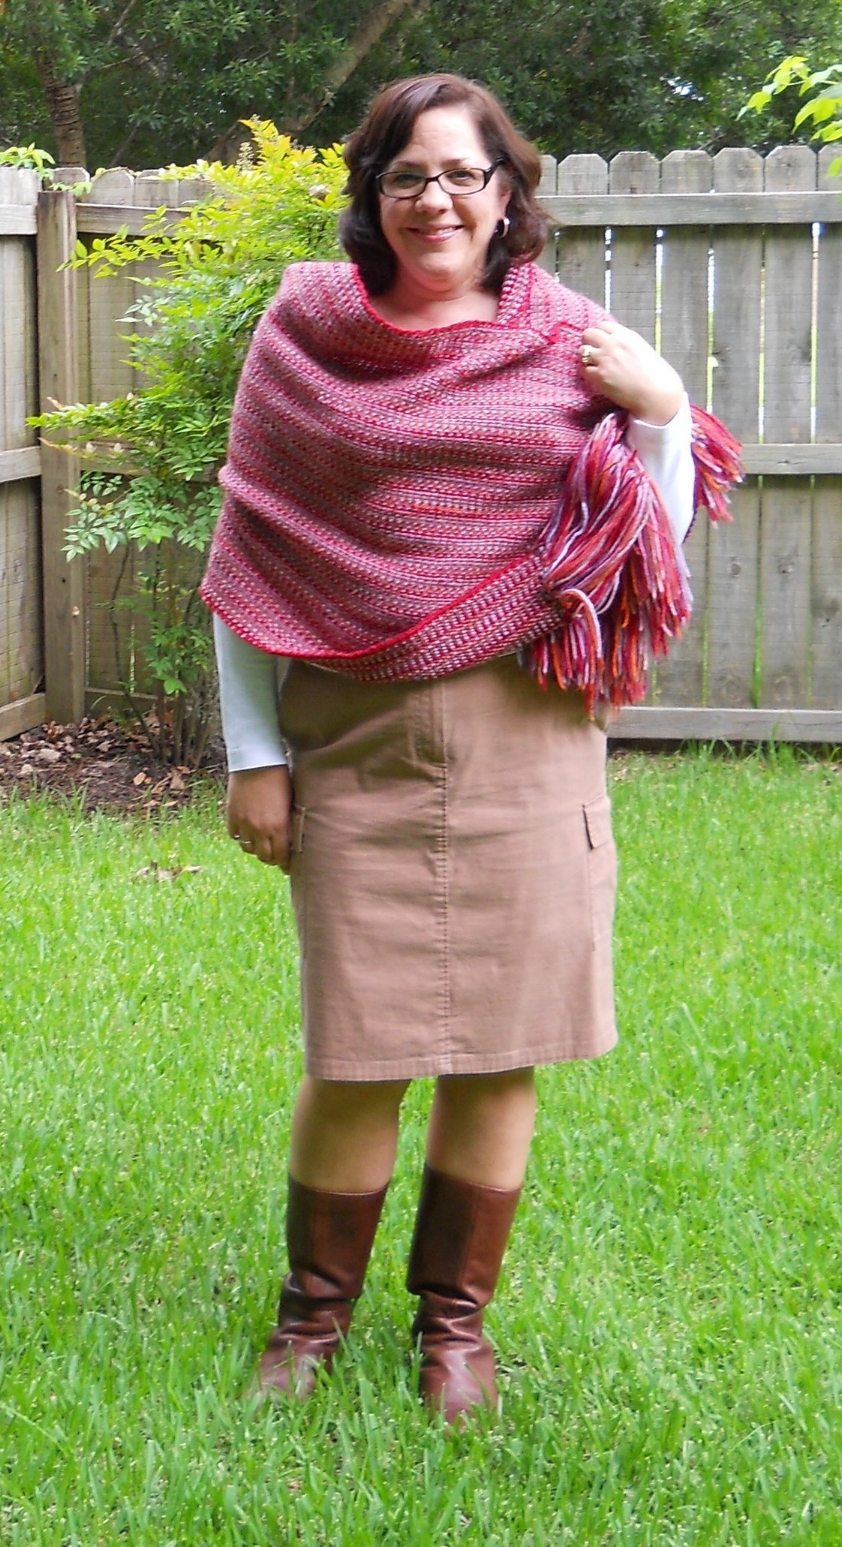 Tamara, wearing the Tamara Wrap. Pattern by Melissa Leapman.